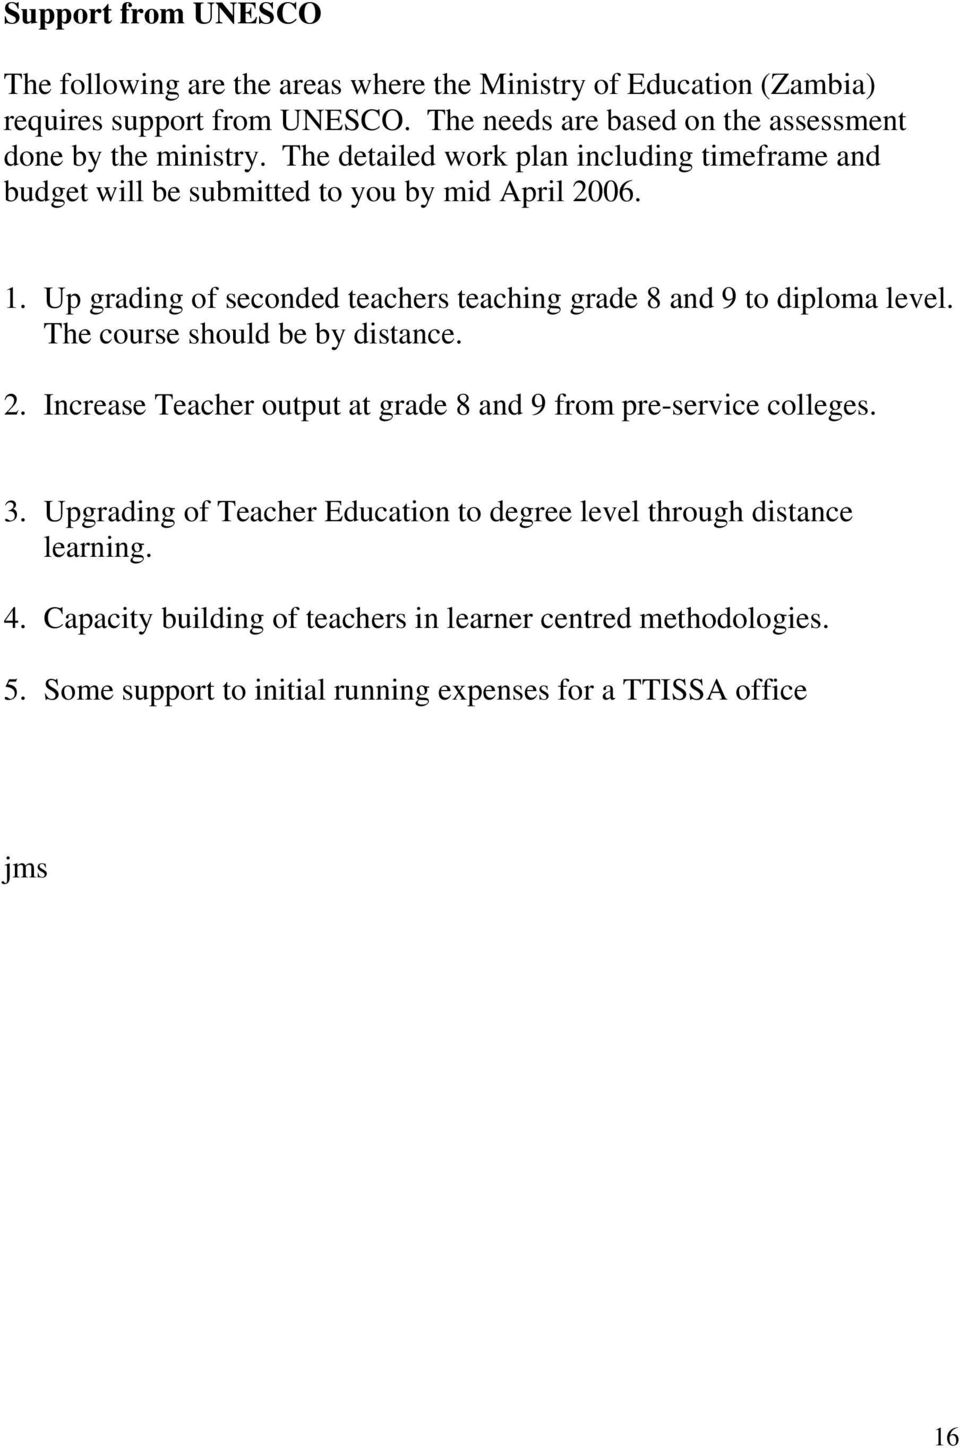 Up grading of seconded teachers teaching grade 8 and 9 to diploma level. The course should be by distance. 2.